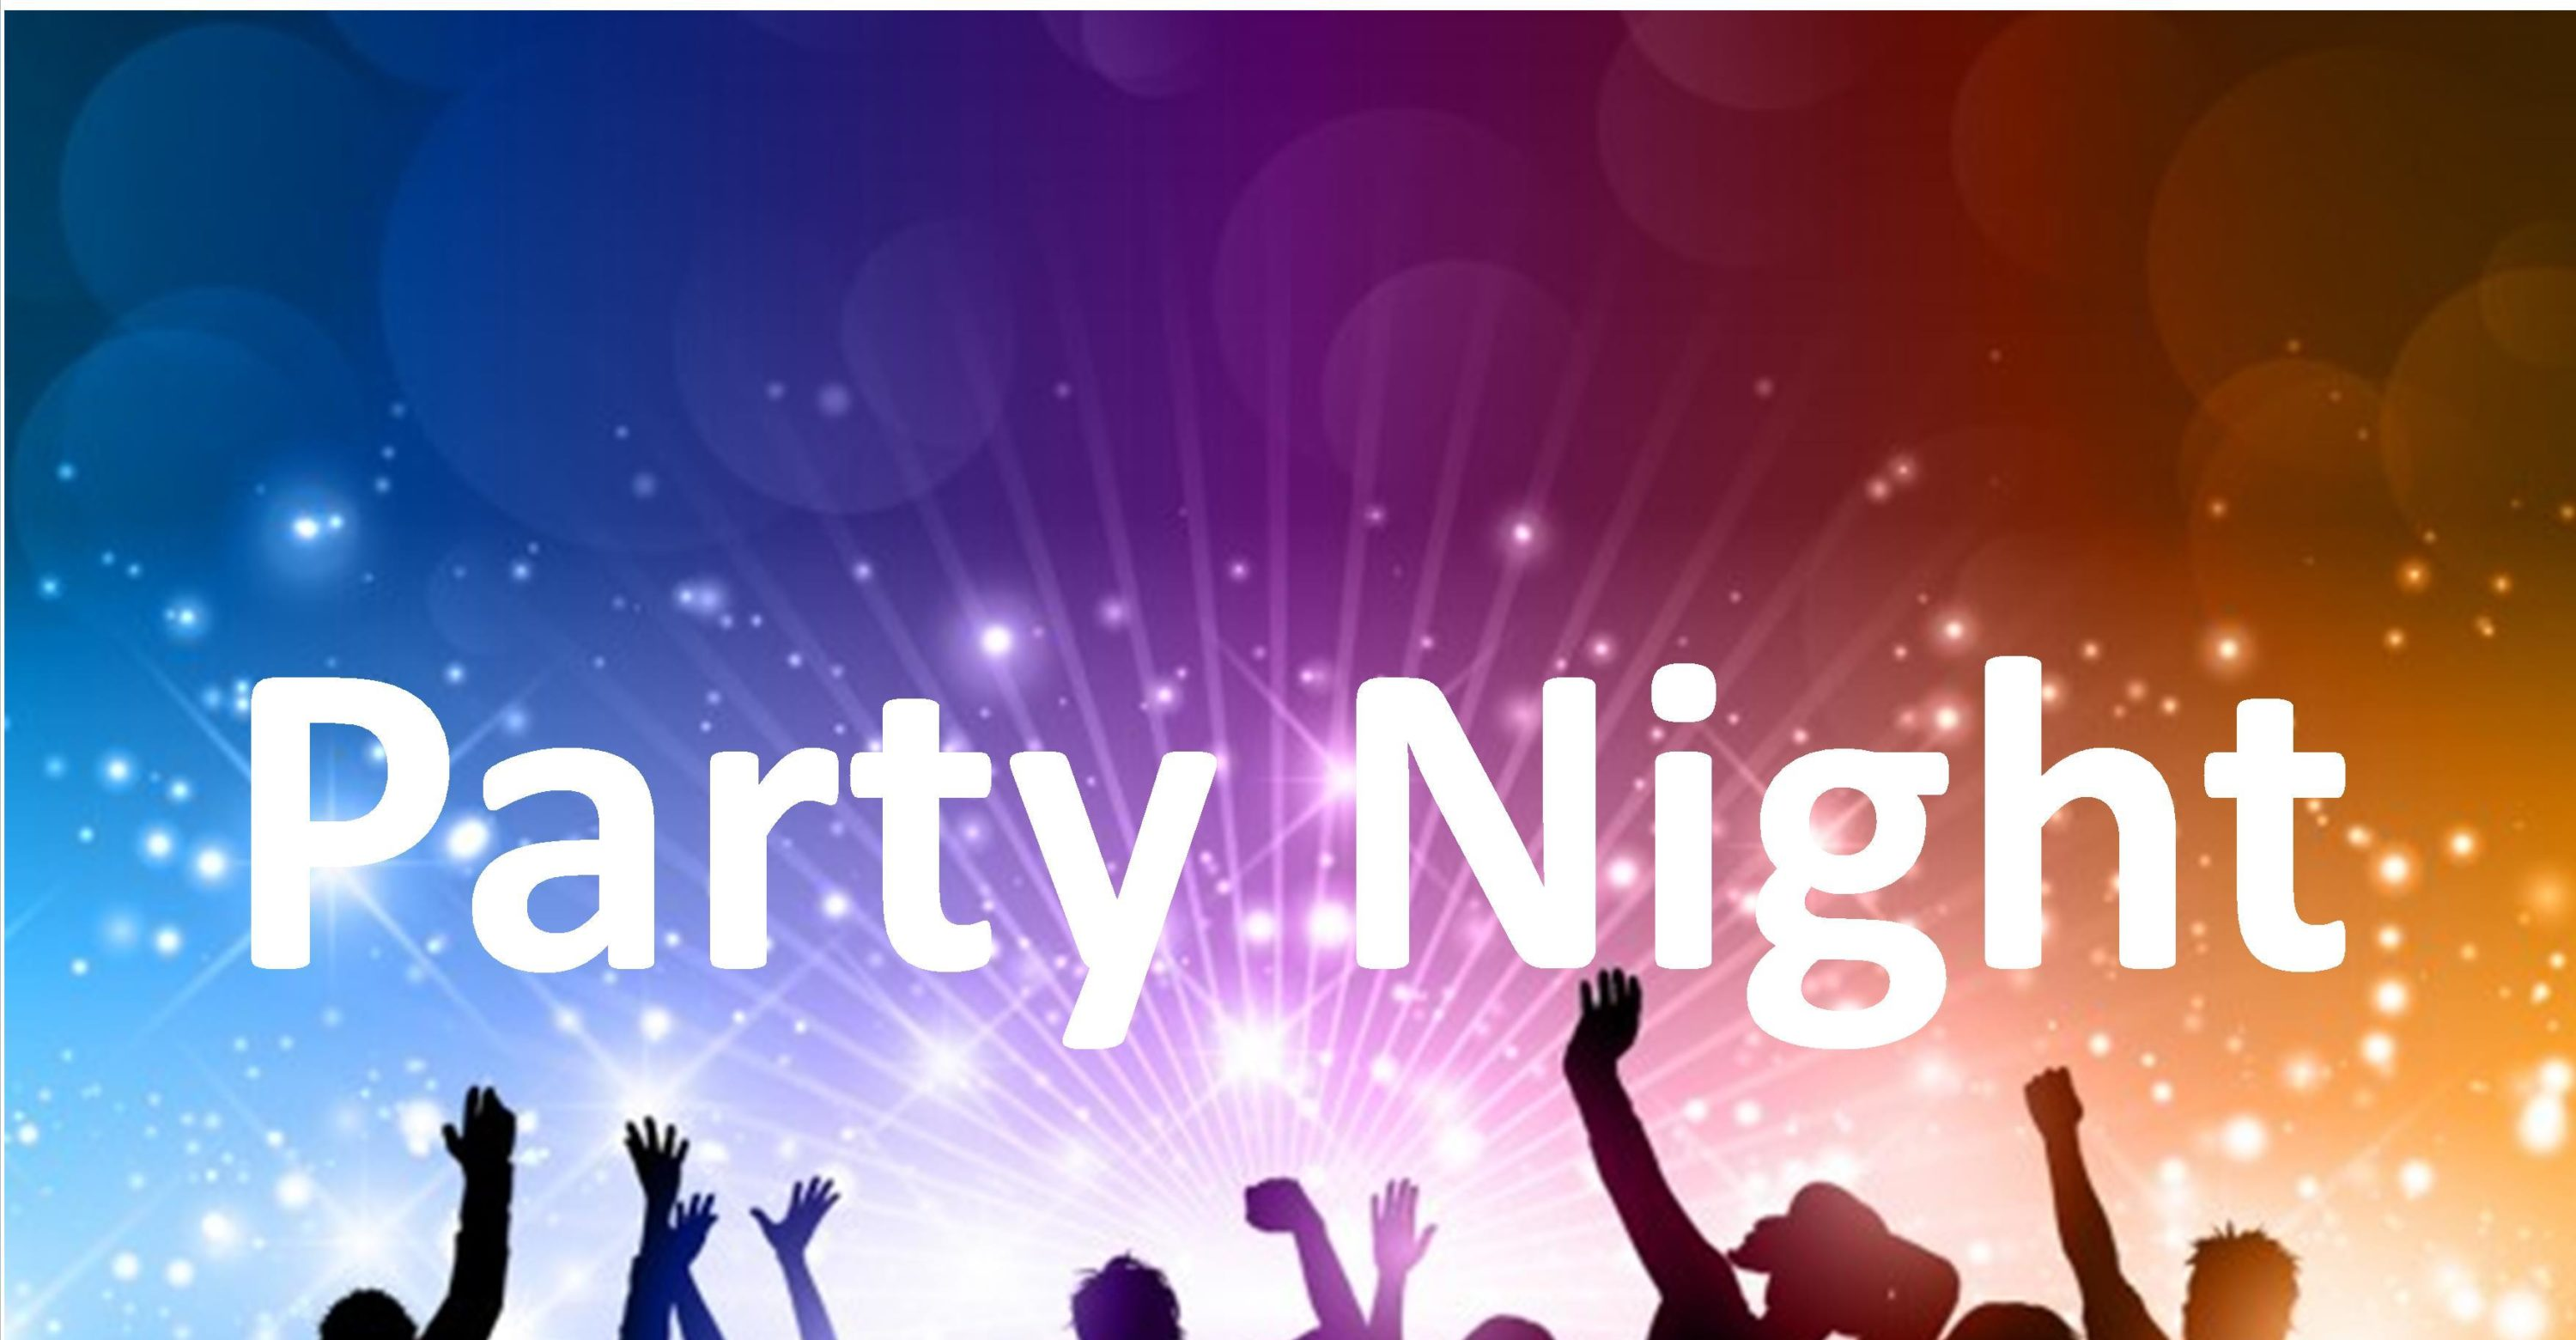 Party Night - Heart of Kent Hospice - Big WOW